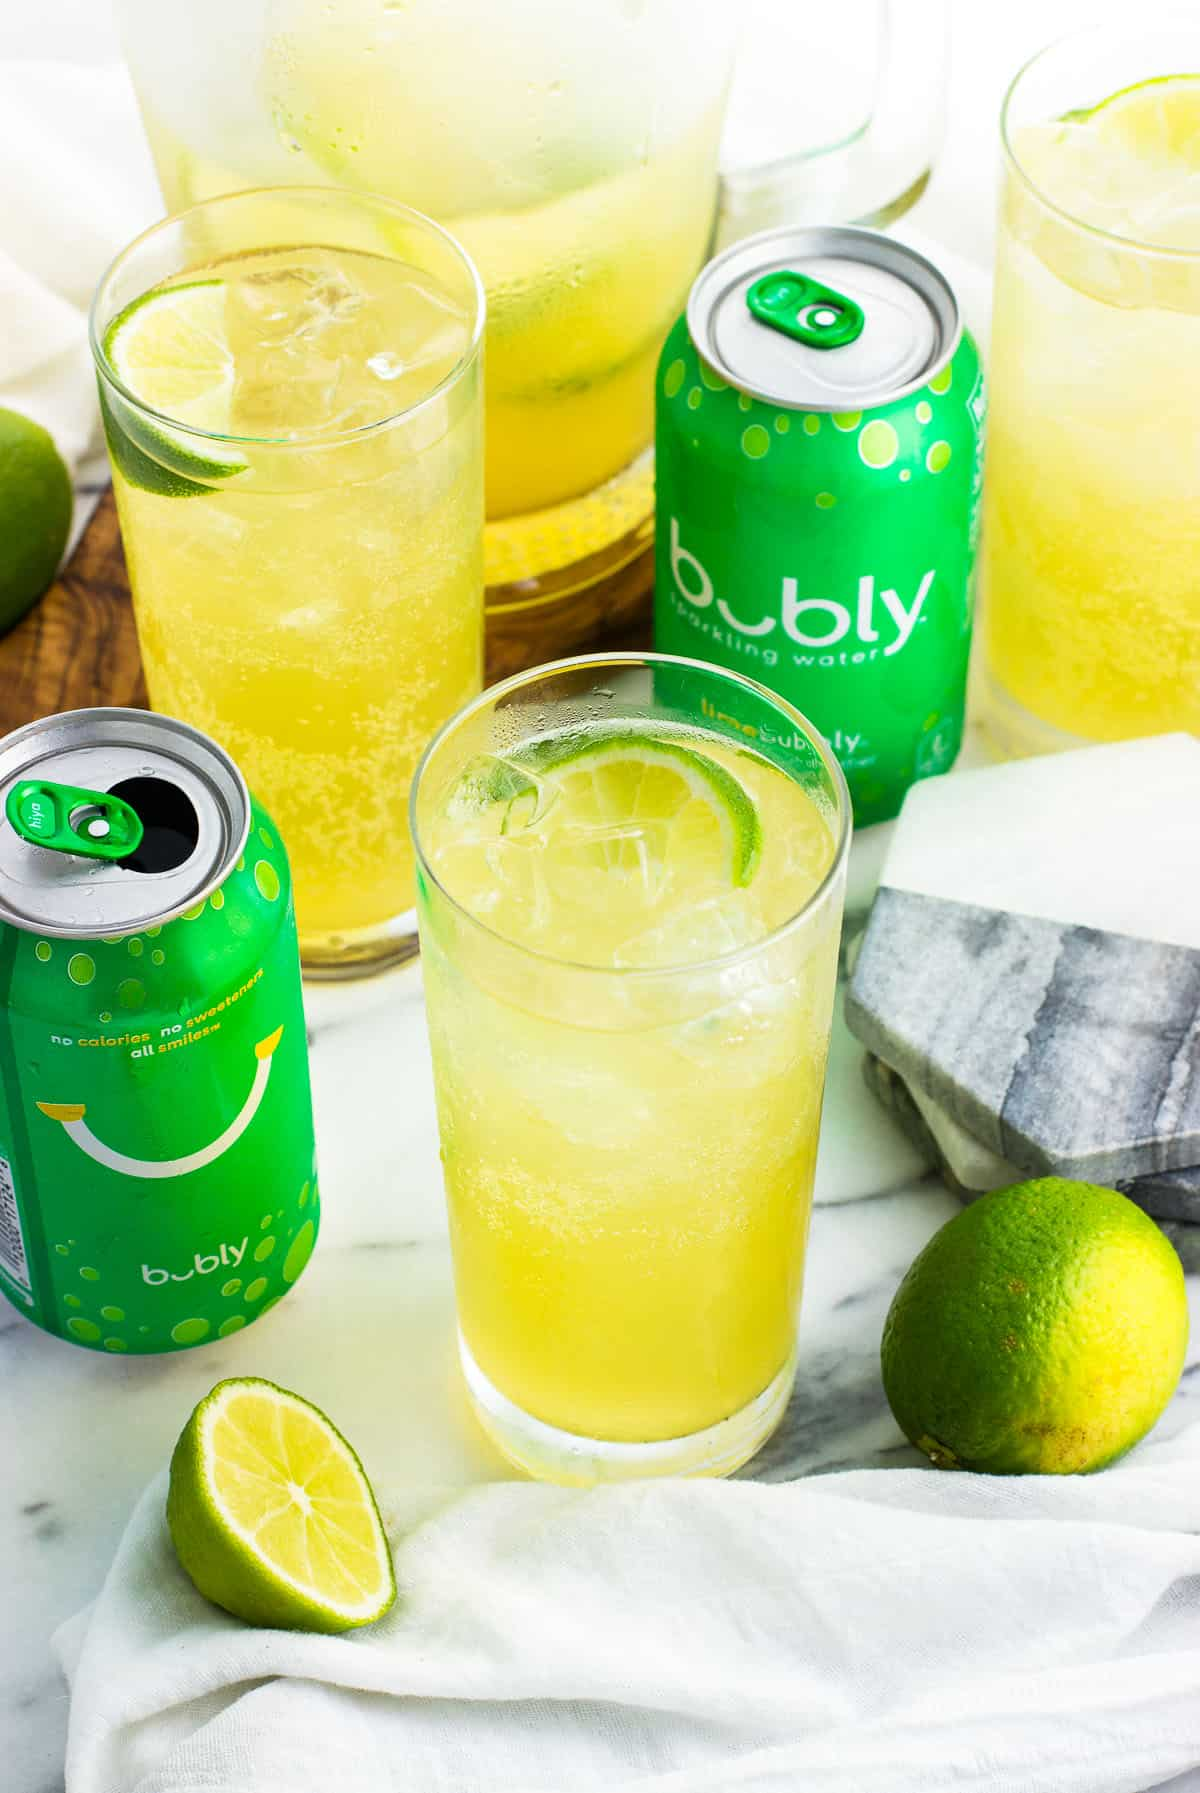 Mocktails in tall glasses next to a glass pitcher, limes, a stack of coasters, and two lime bubly™ sparkling water cans